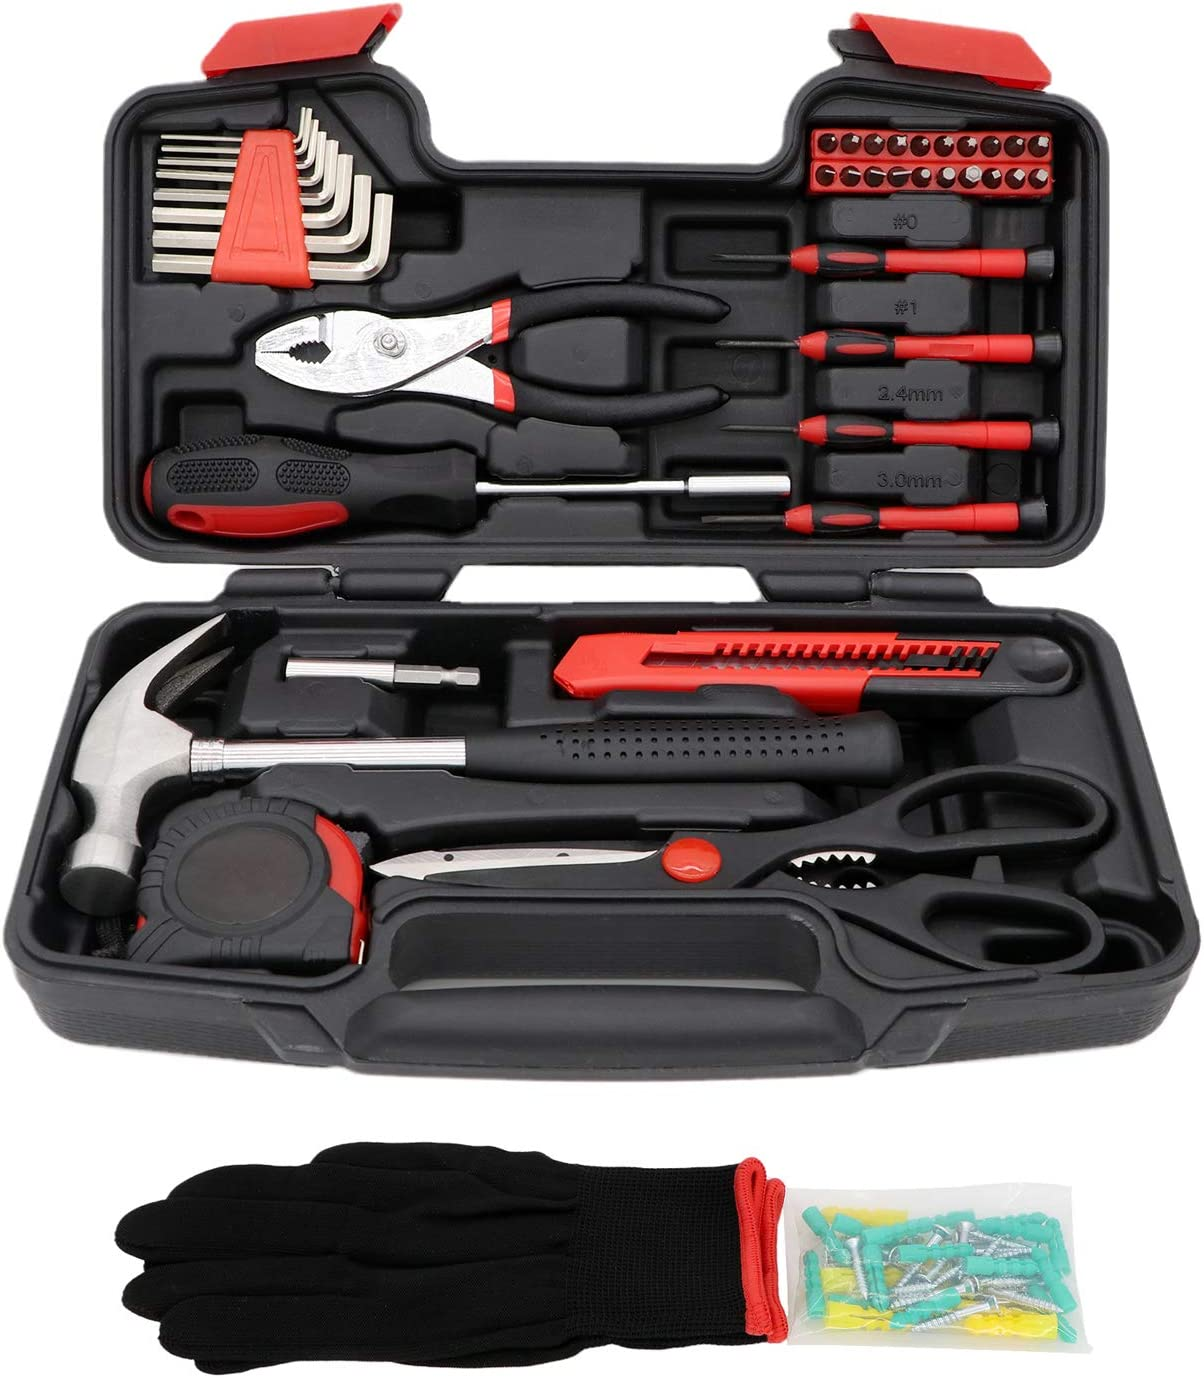 GETUHAND 40-Piece General Home Tool Kit, Basic Household Repair Tool Set with Tool Box Storage Case - Great Gift for Beginners, College Students, Household Use & More